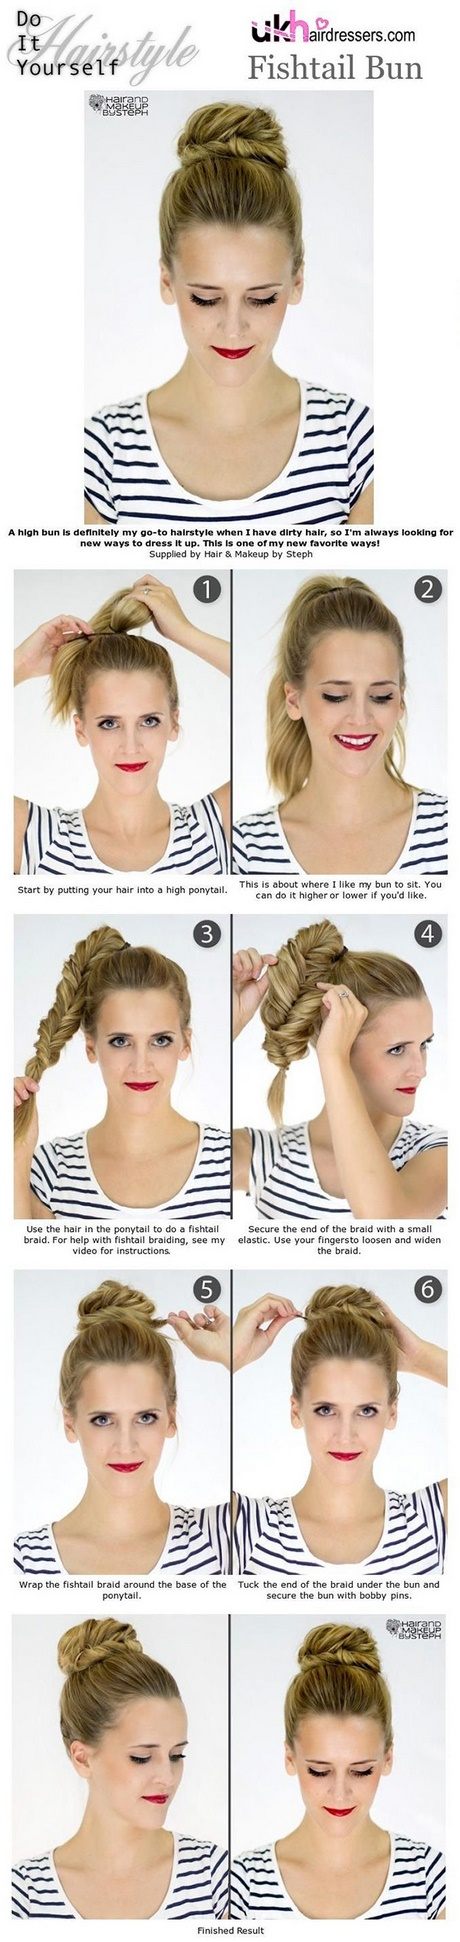 Cute easy fast hairstyles for medium length hair 2 minute quick hairstyle tutorials for medium lengthshort hair solutioingenieria Image collections